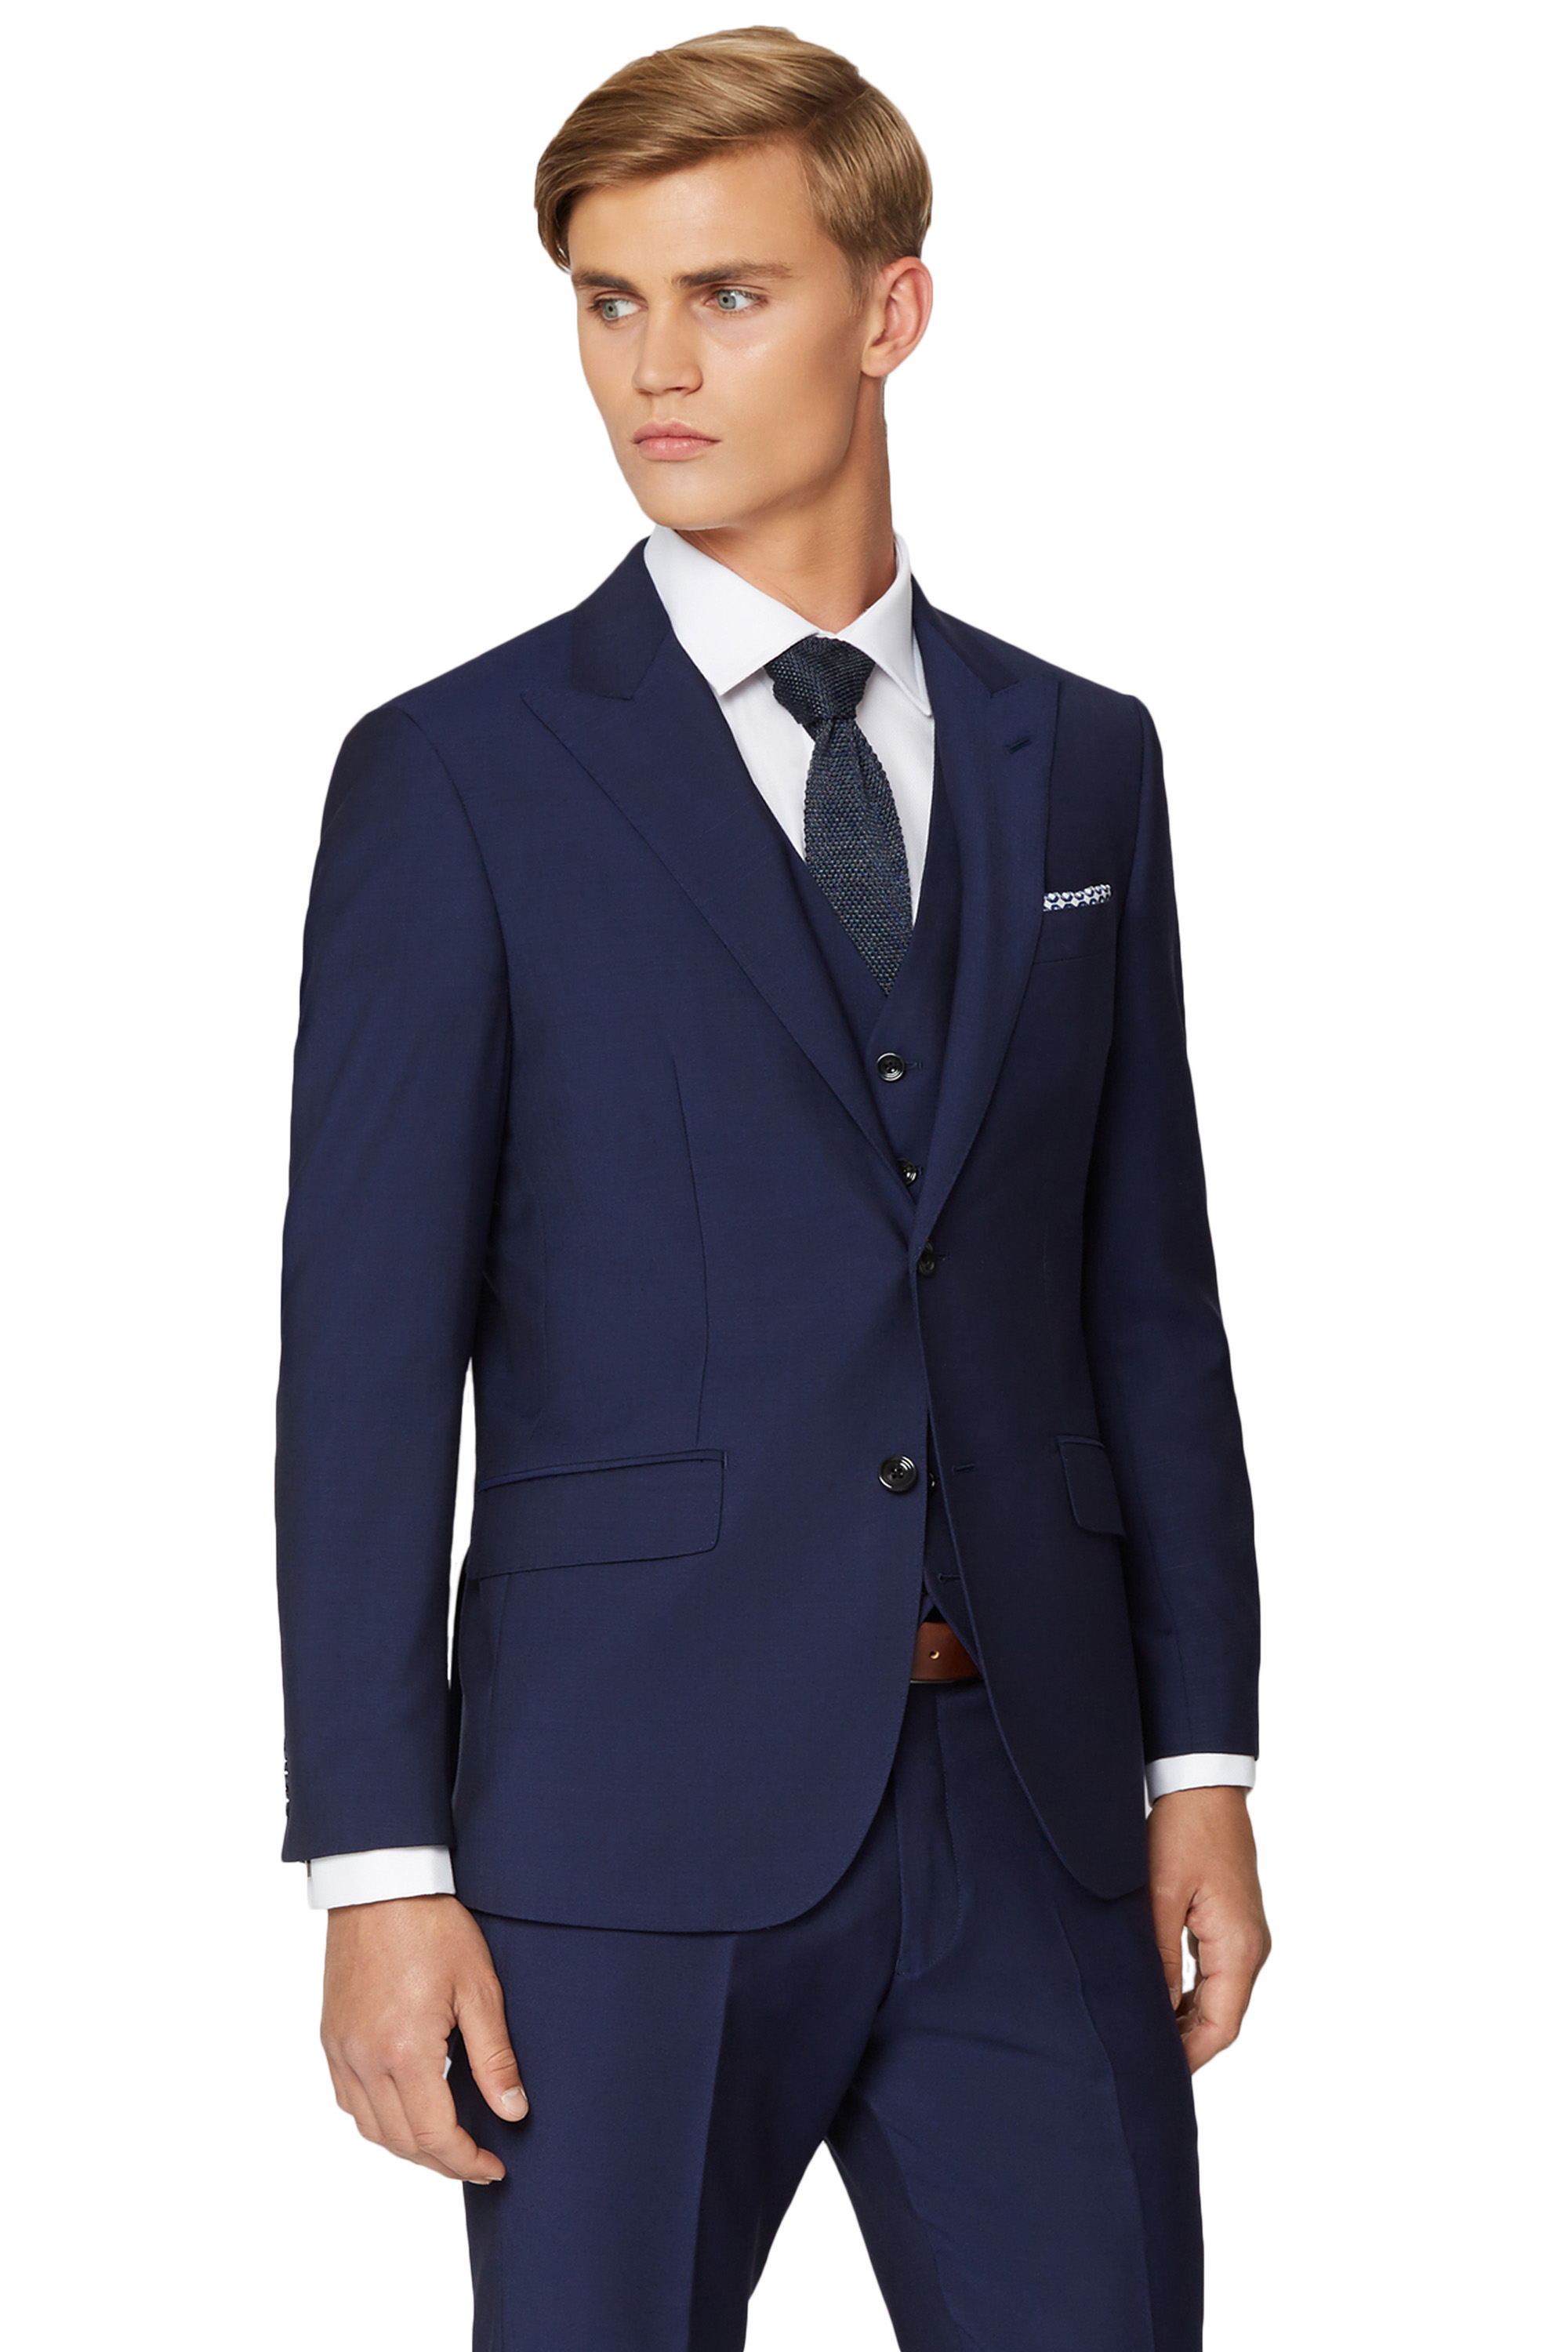 Hardy Amies Mens Dark Blue Suit Jacket Tailored Fit Wool ... - photo#3